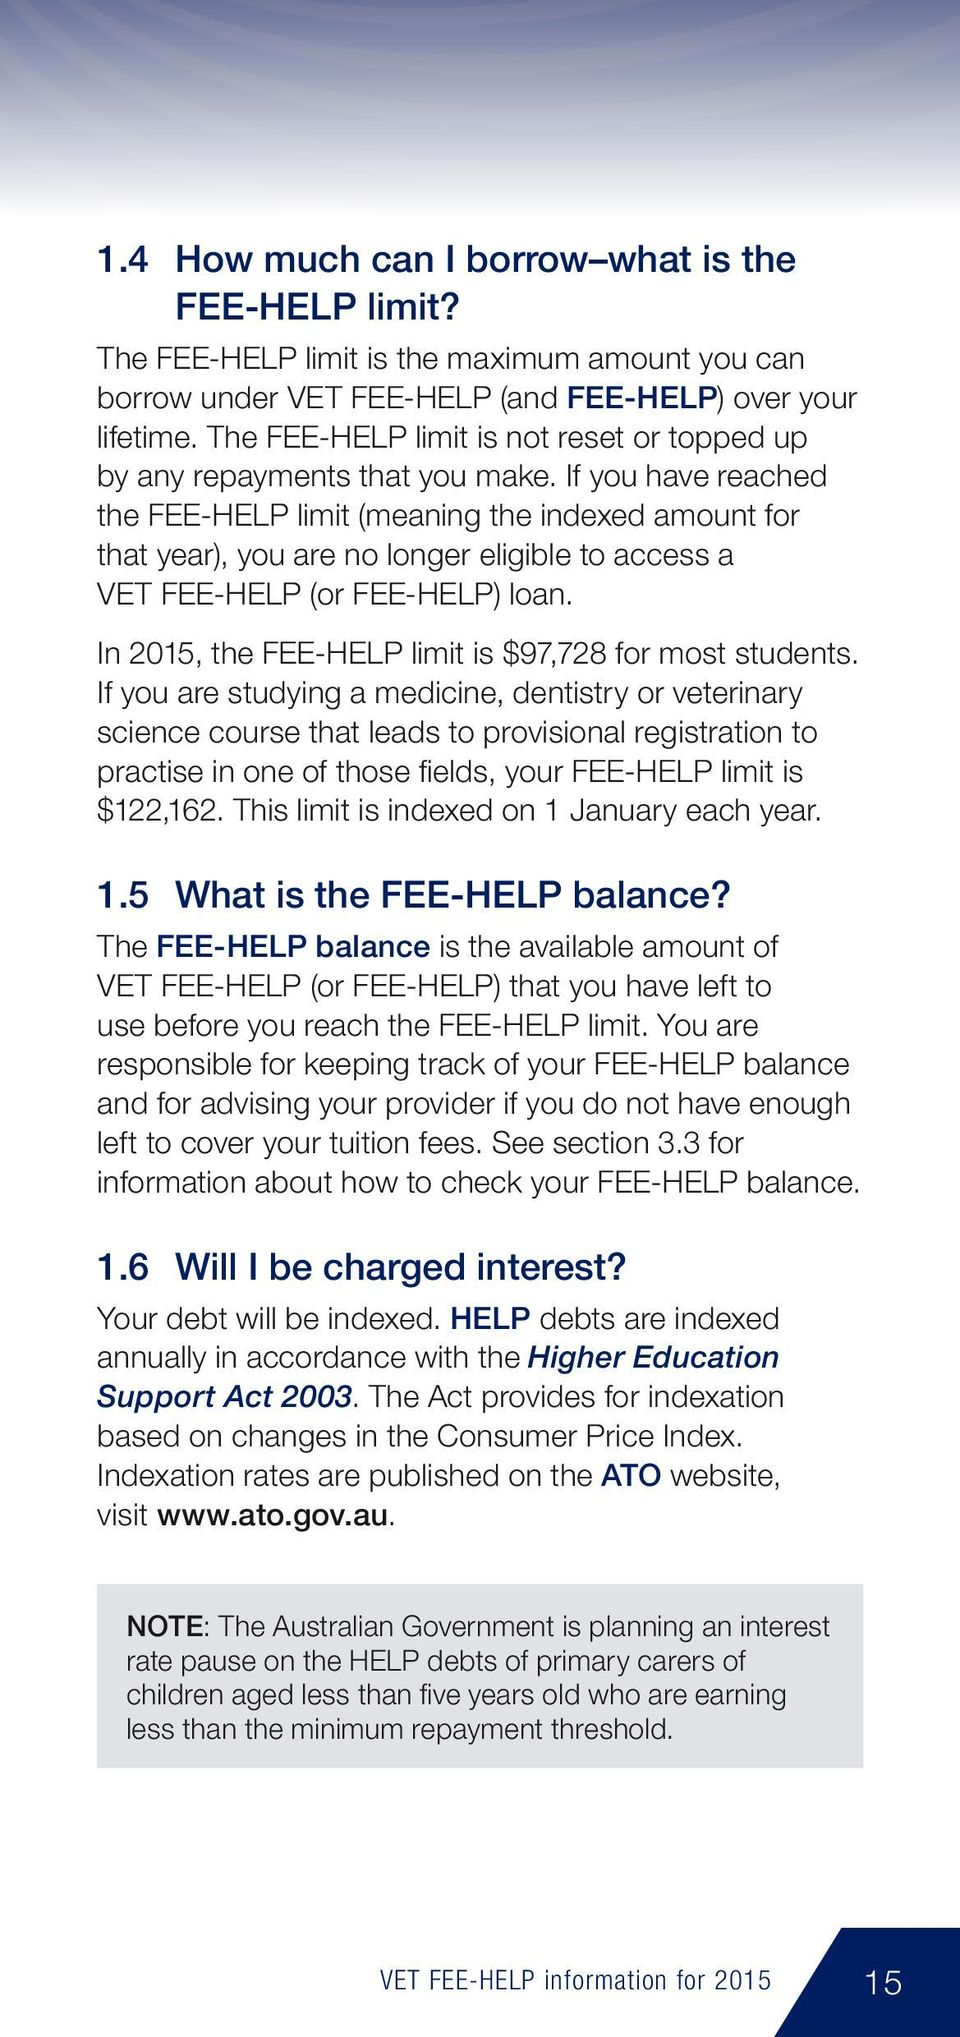 If you have reached the FEE-HELP limit (meaning the indexed amount for that year), you are no longer eligible to access a VET FEE-HELP (or FEE-HELP) loan.